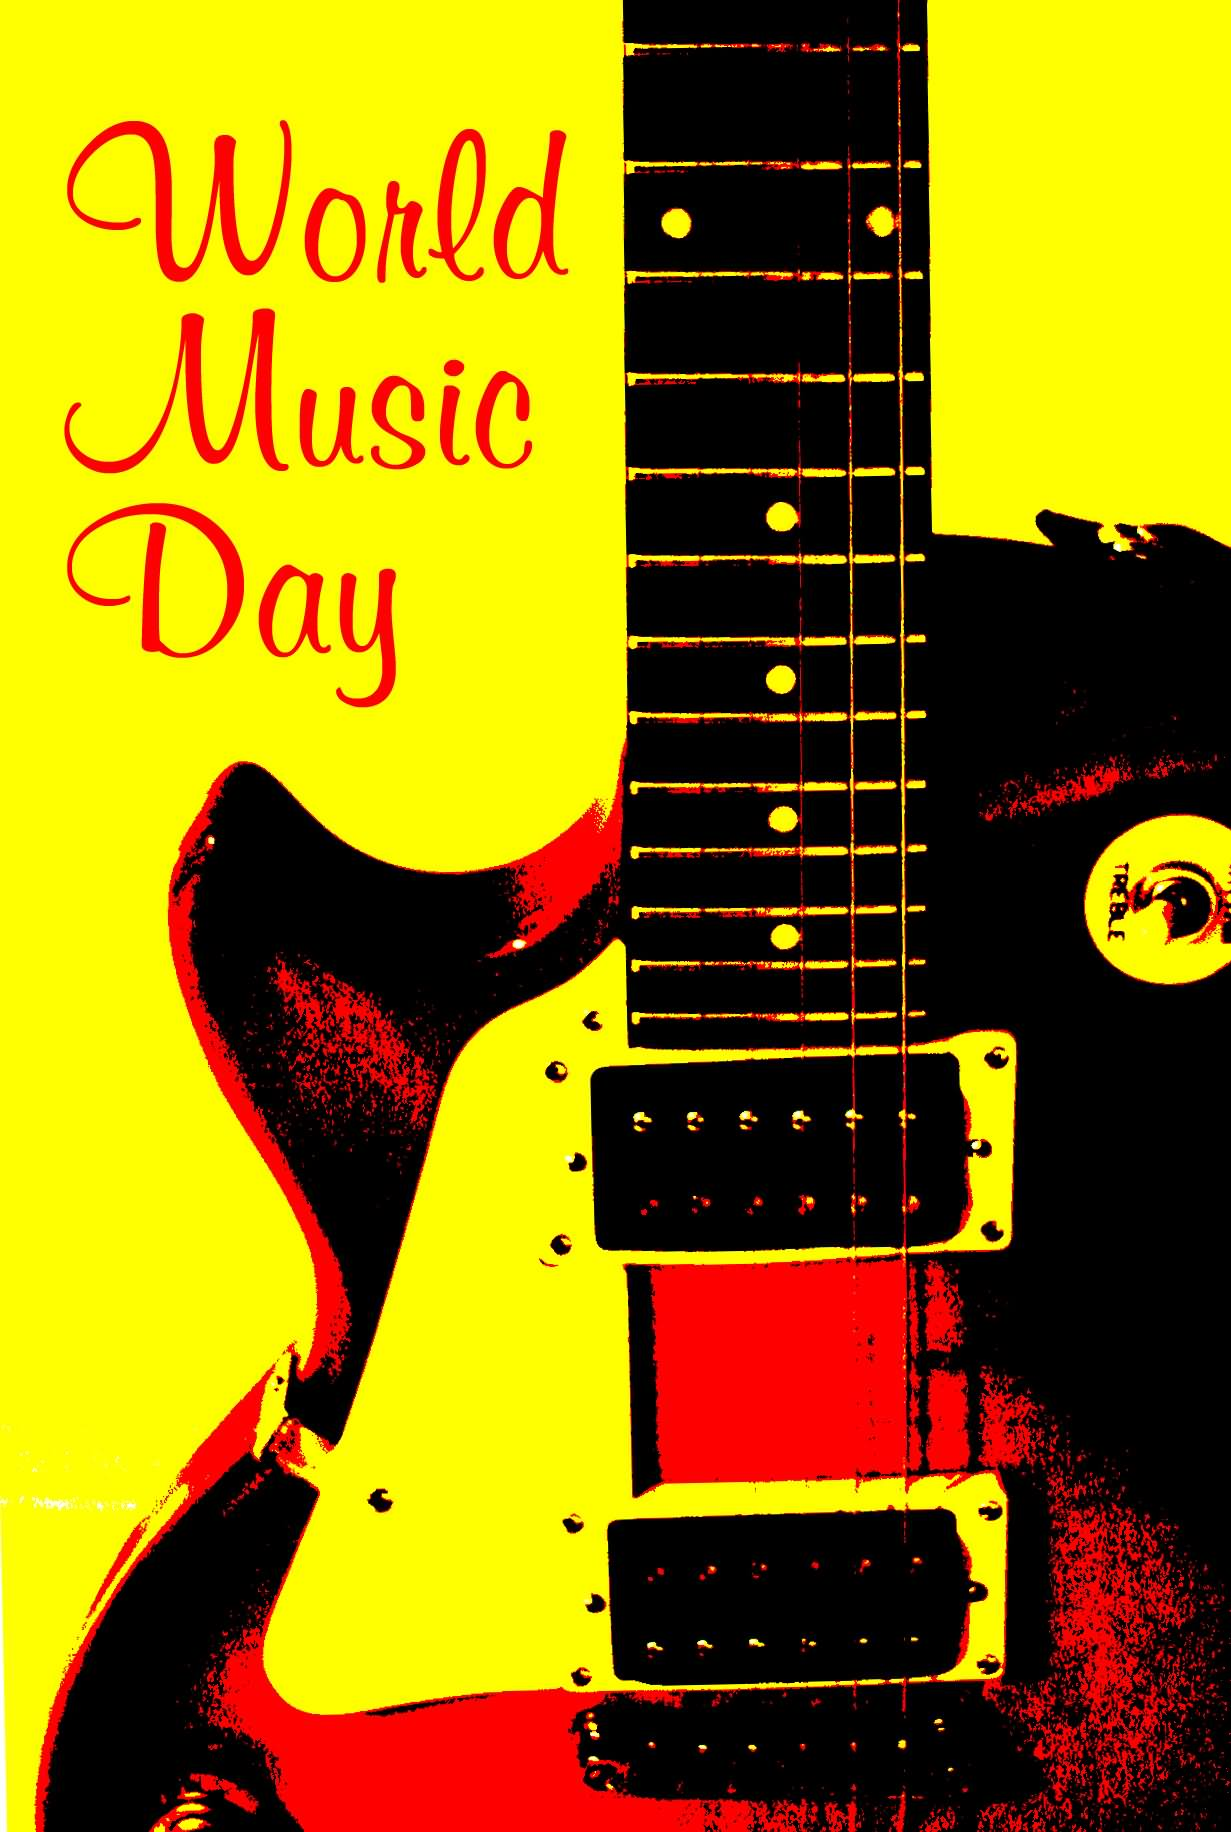 Beautiful Girl With Guitar Hd Wallpapers 42 Incredible Pictures Of World Music Day Greetings